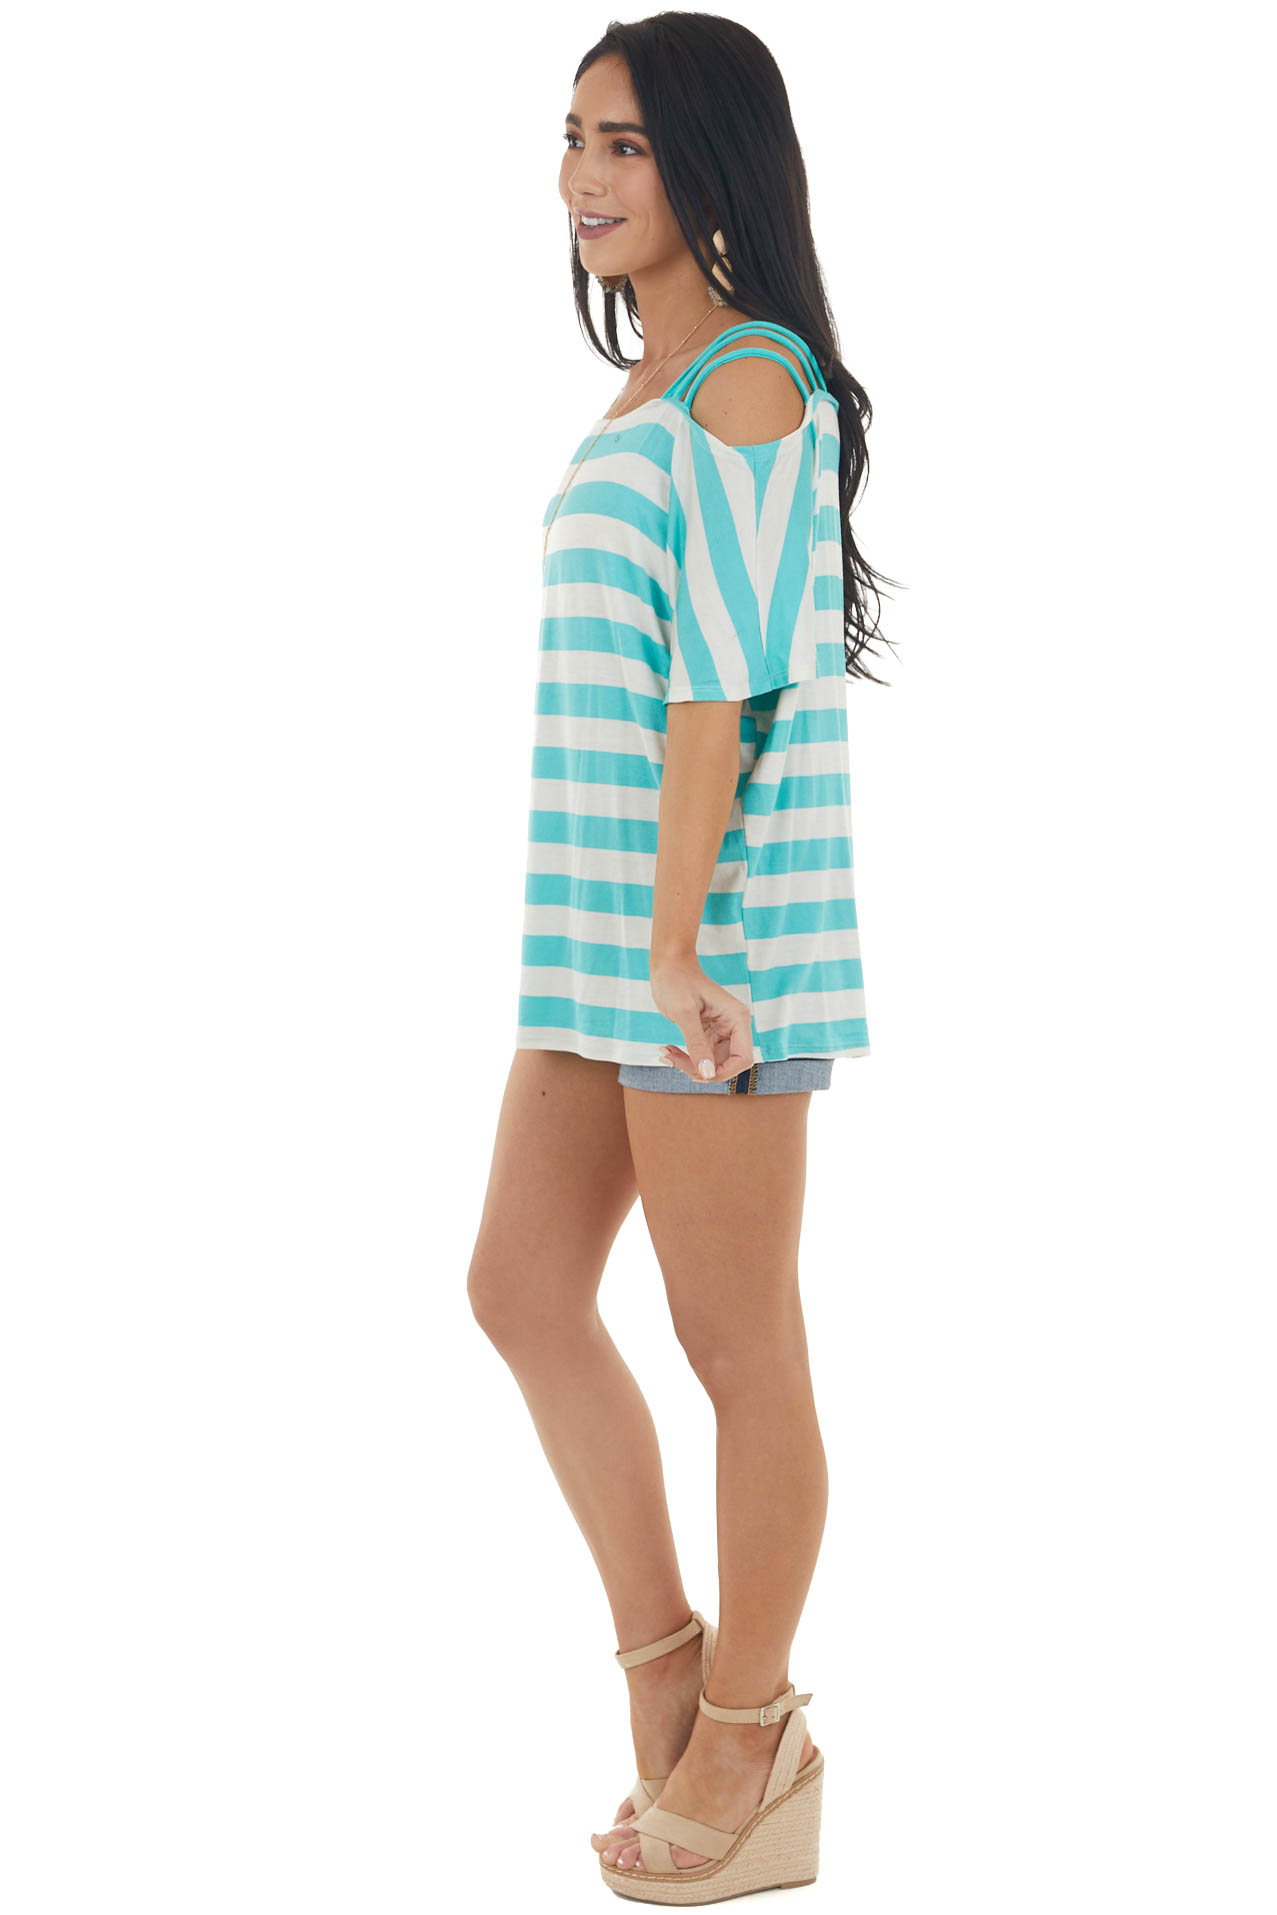 Aqua Blue and Cream Striped Cold Strapped Shoulder Knit Top